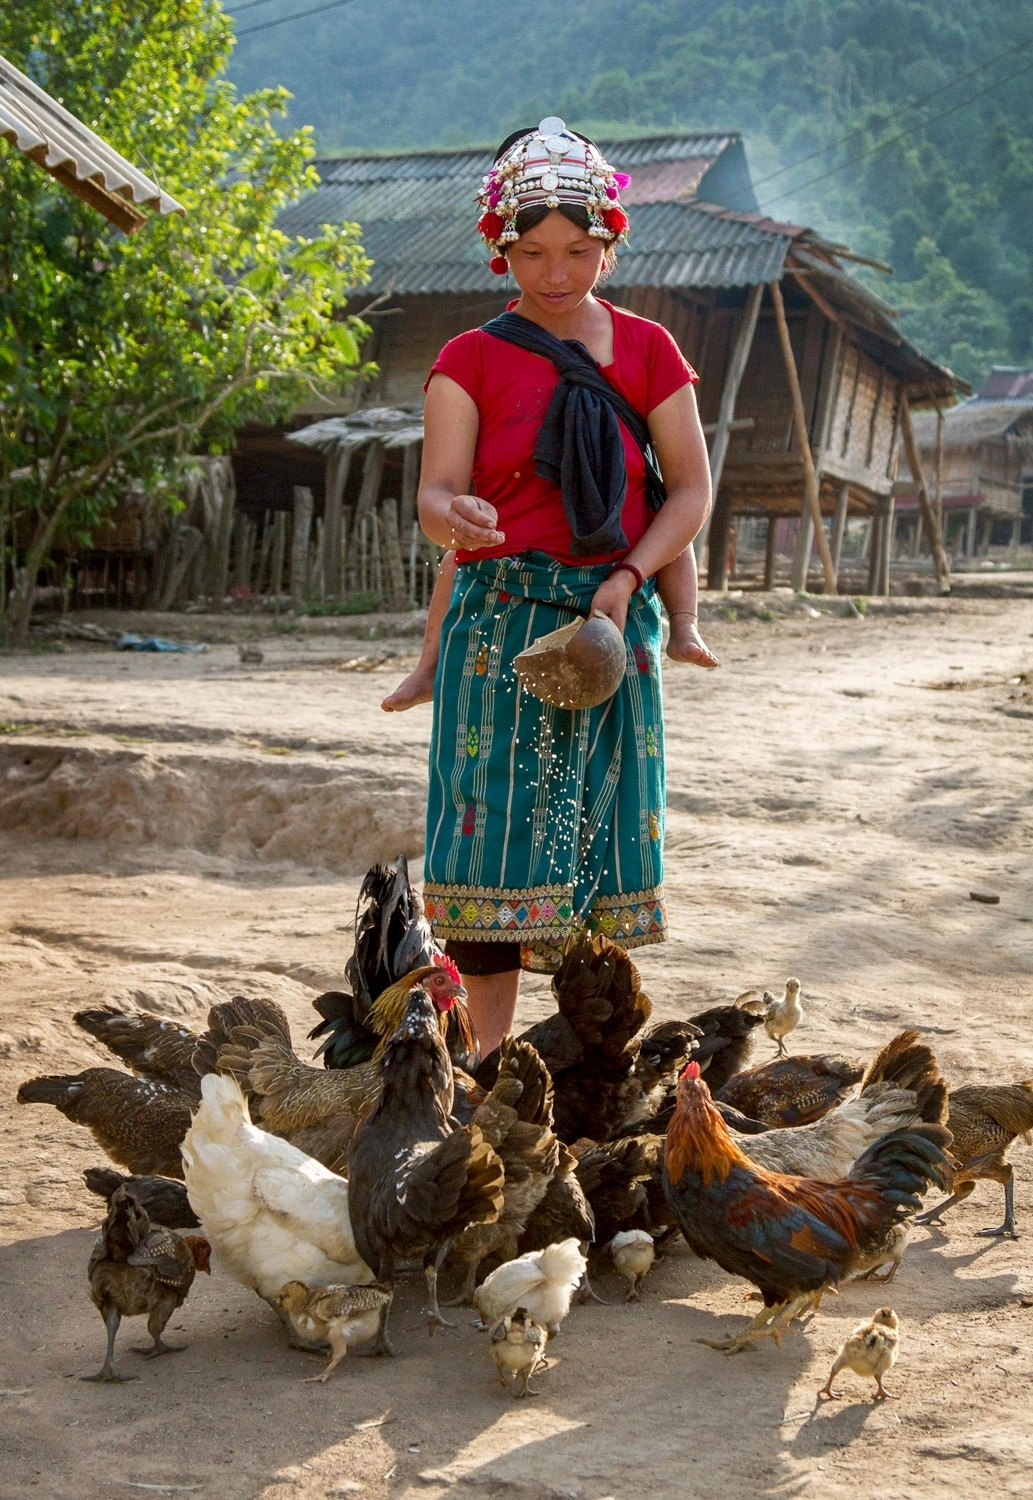 OPEN THIS PUBLICATION  UNICEF LAOS: SA PAE'S STORY   Feeding the ducks; Northern Laos